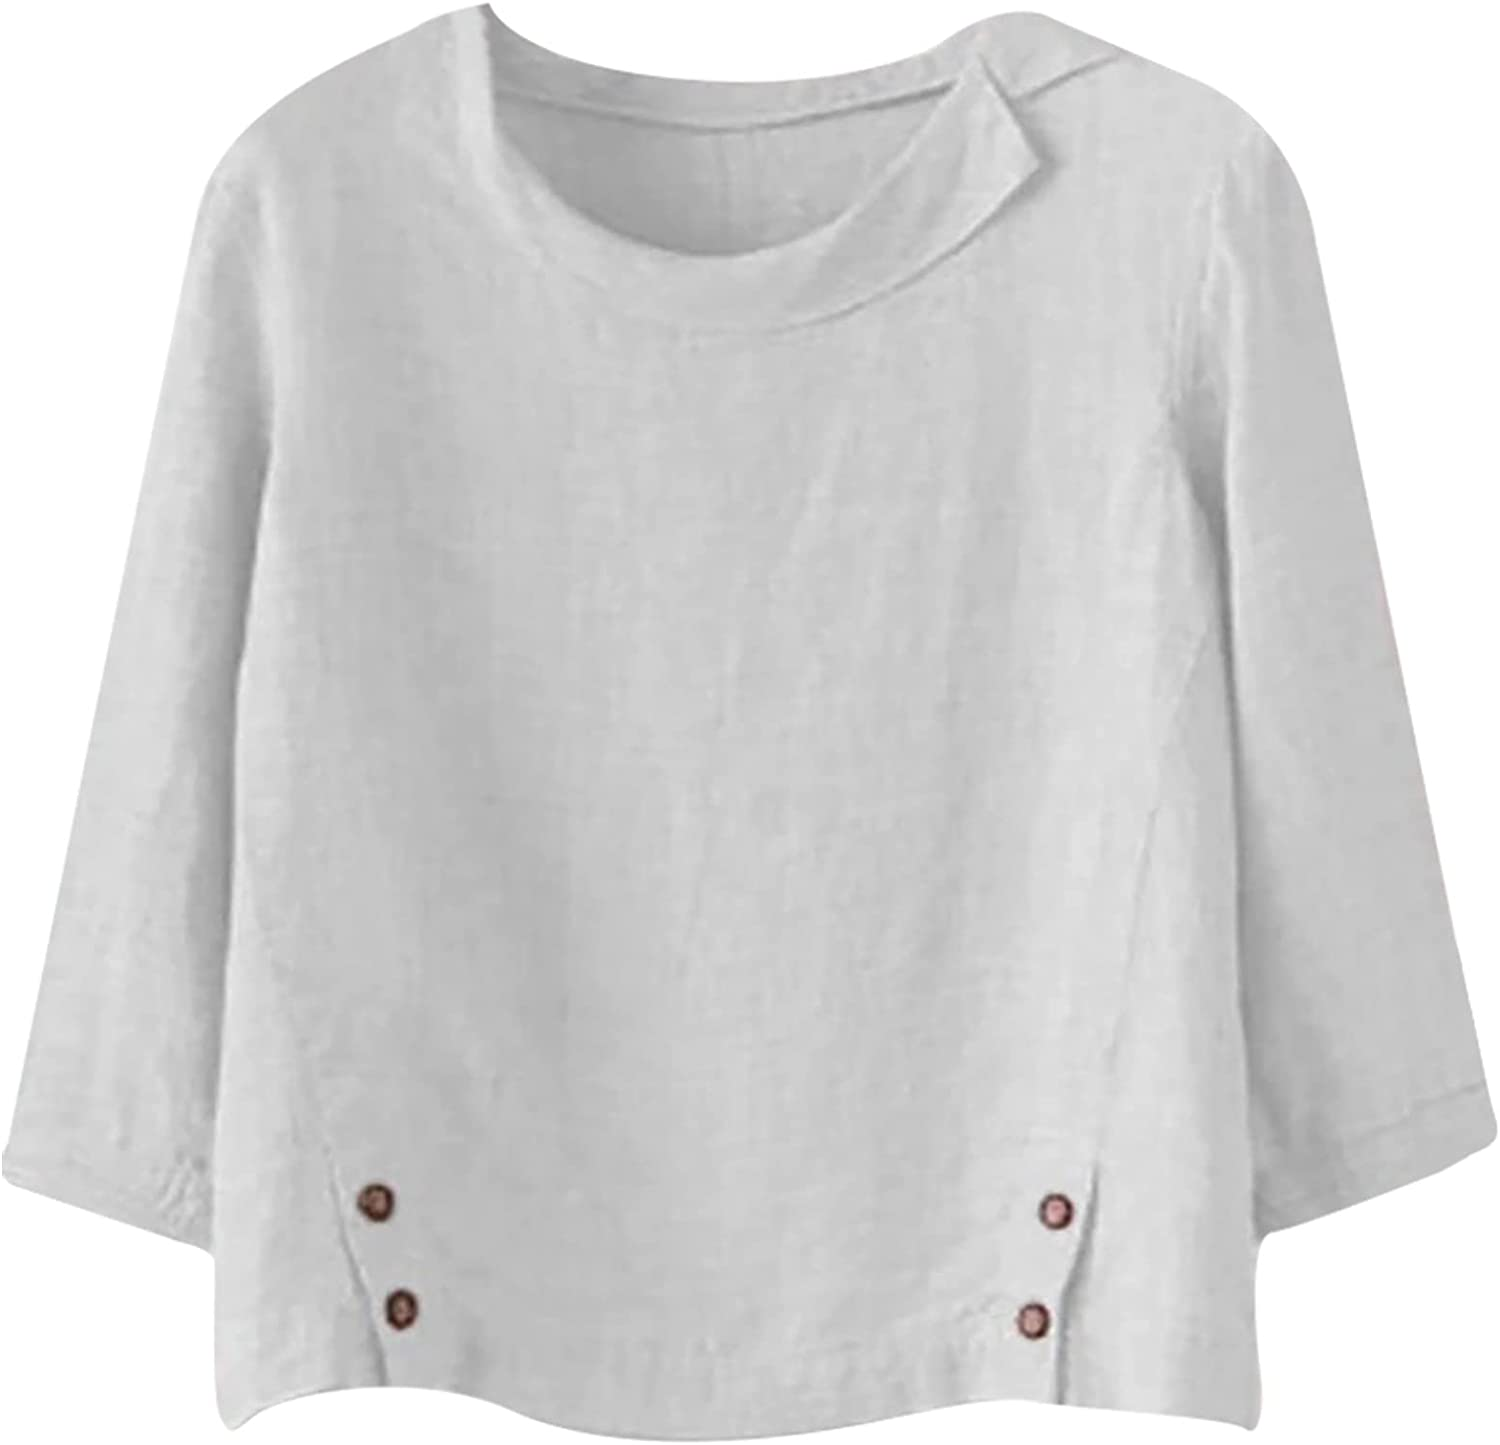 Linen T Shirt for Women Solid Color Blouse Long Sleeve Tees Round Neck Casual Tops Lightweight Tshirt